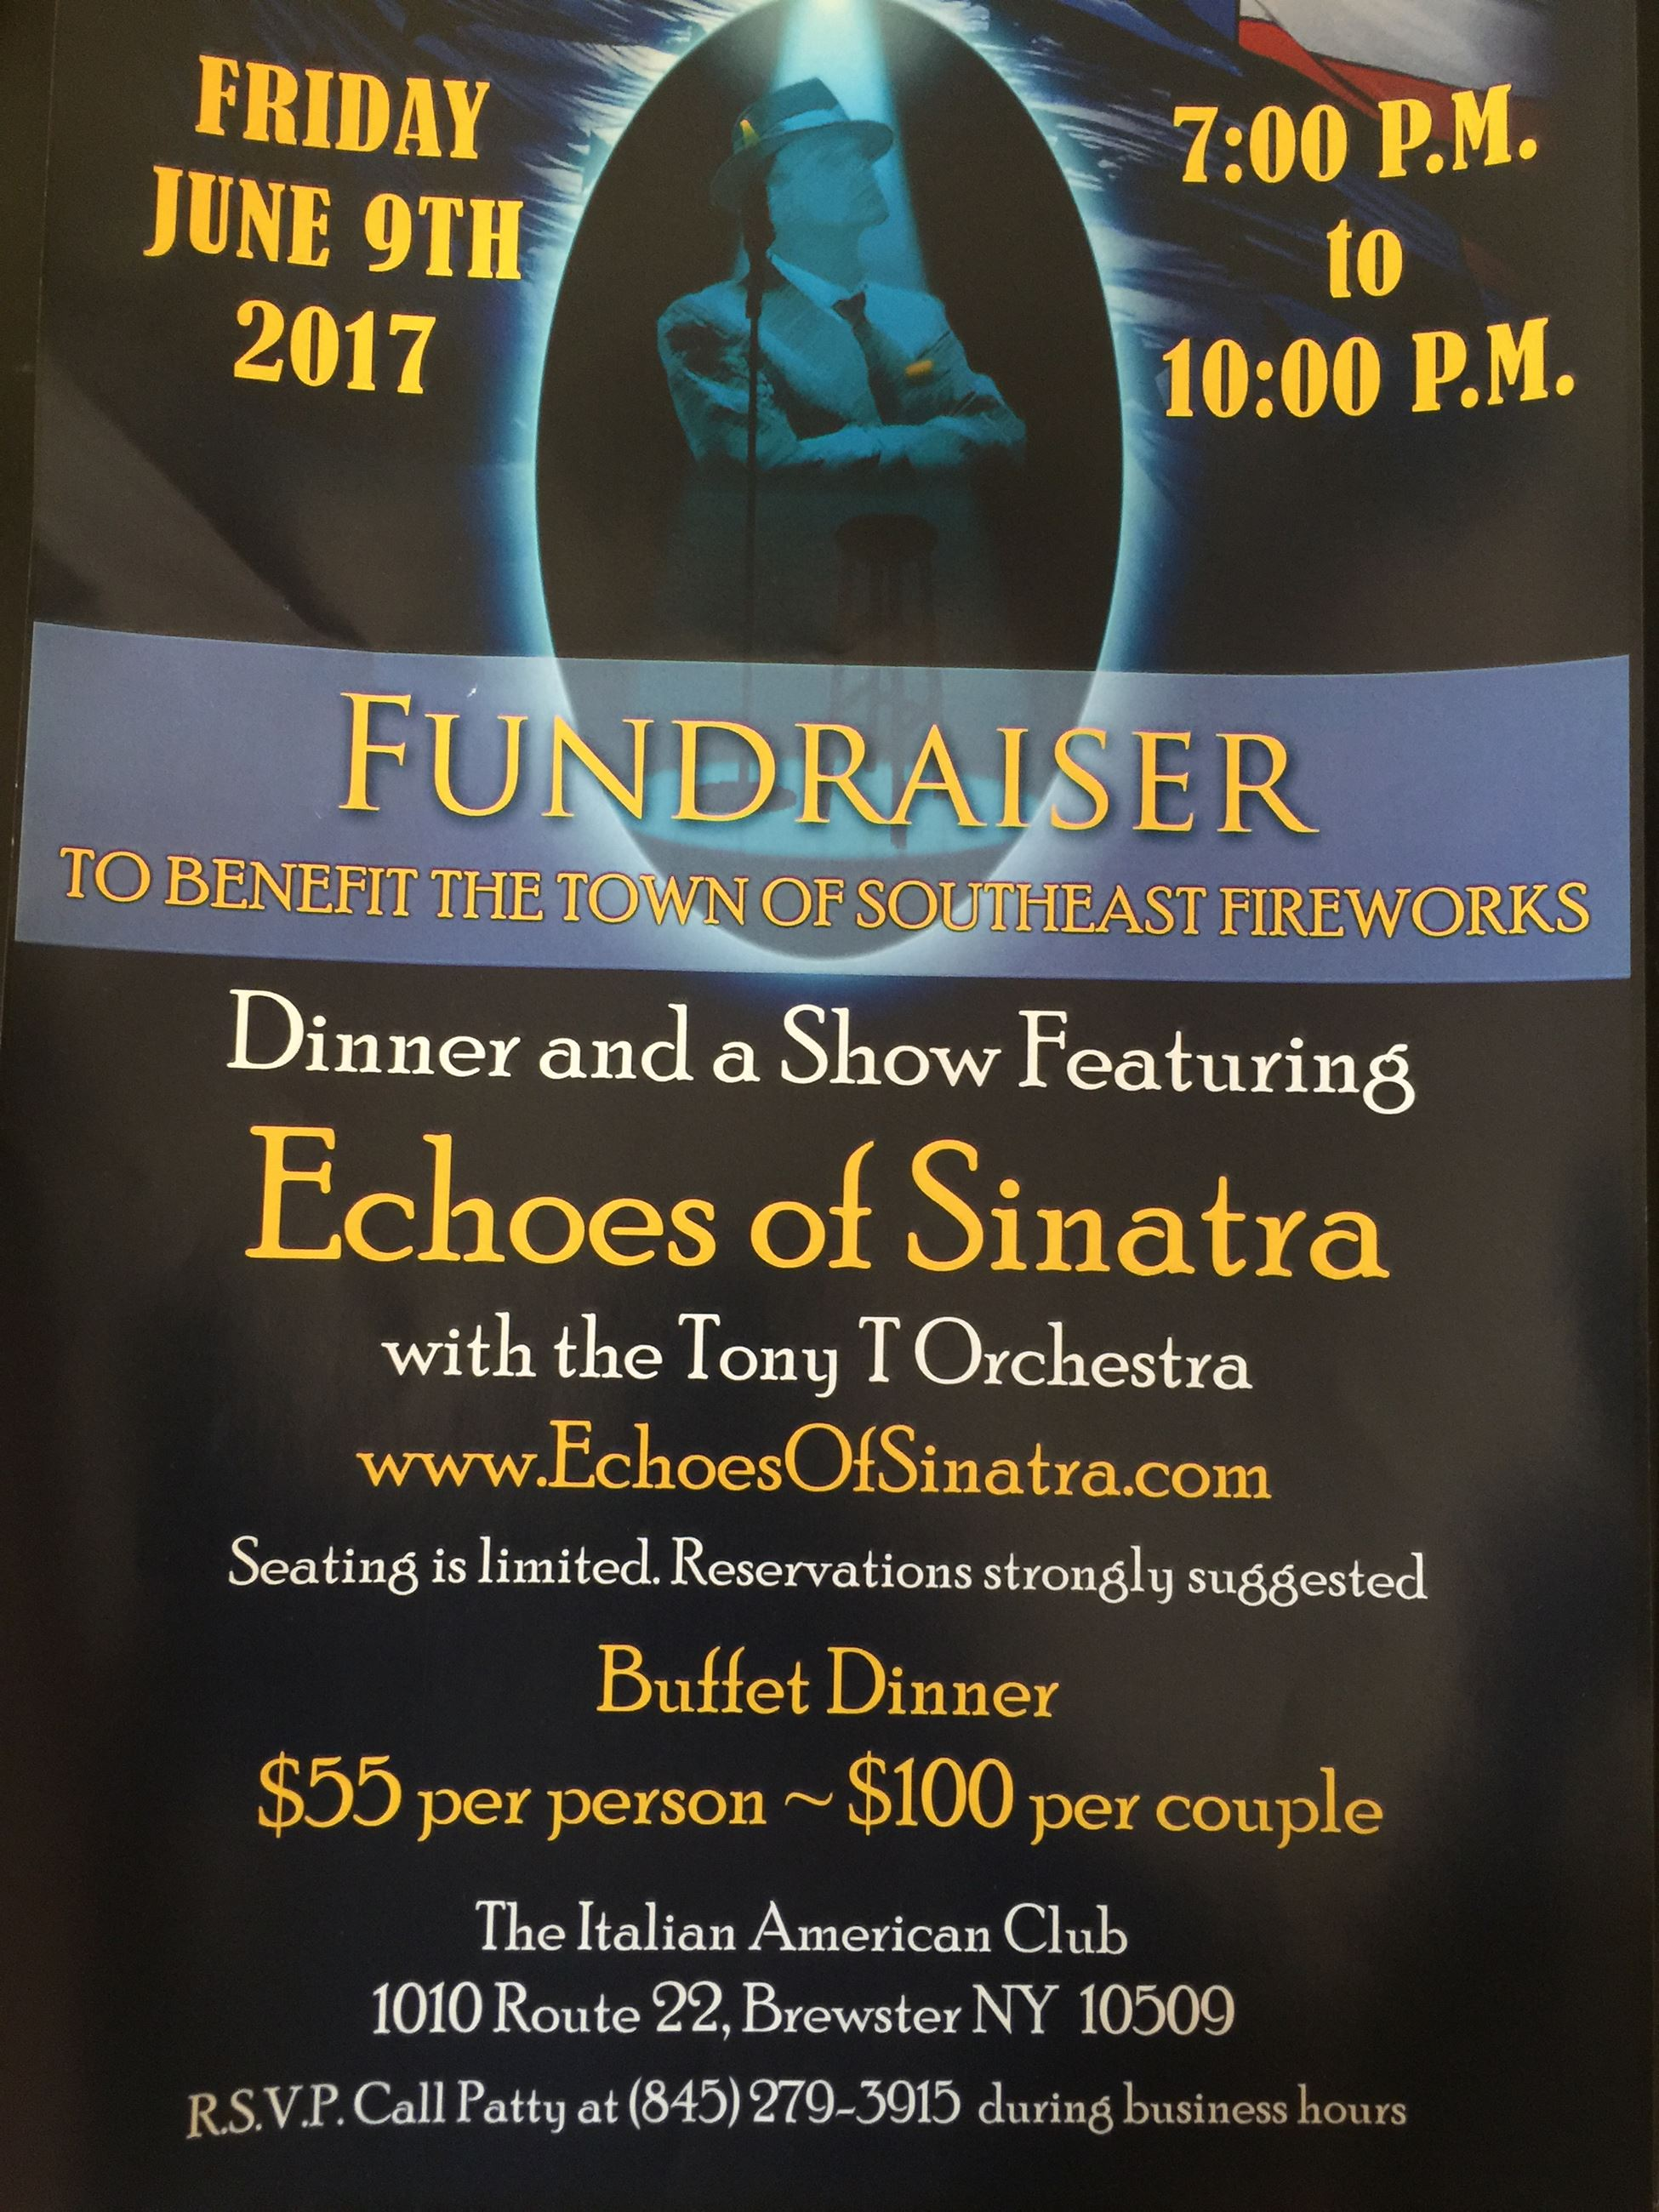 Echoes of Sinatra Fundraiser